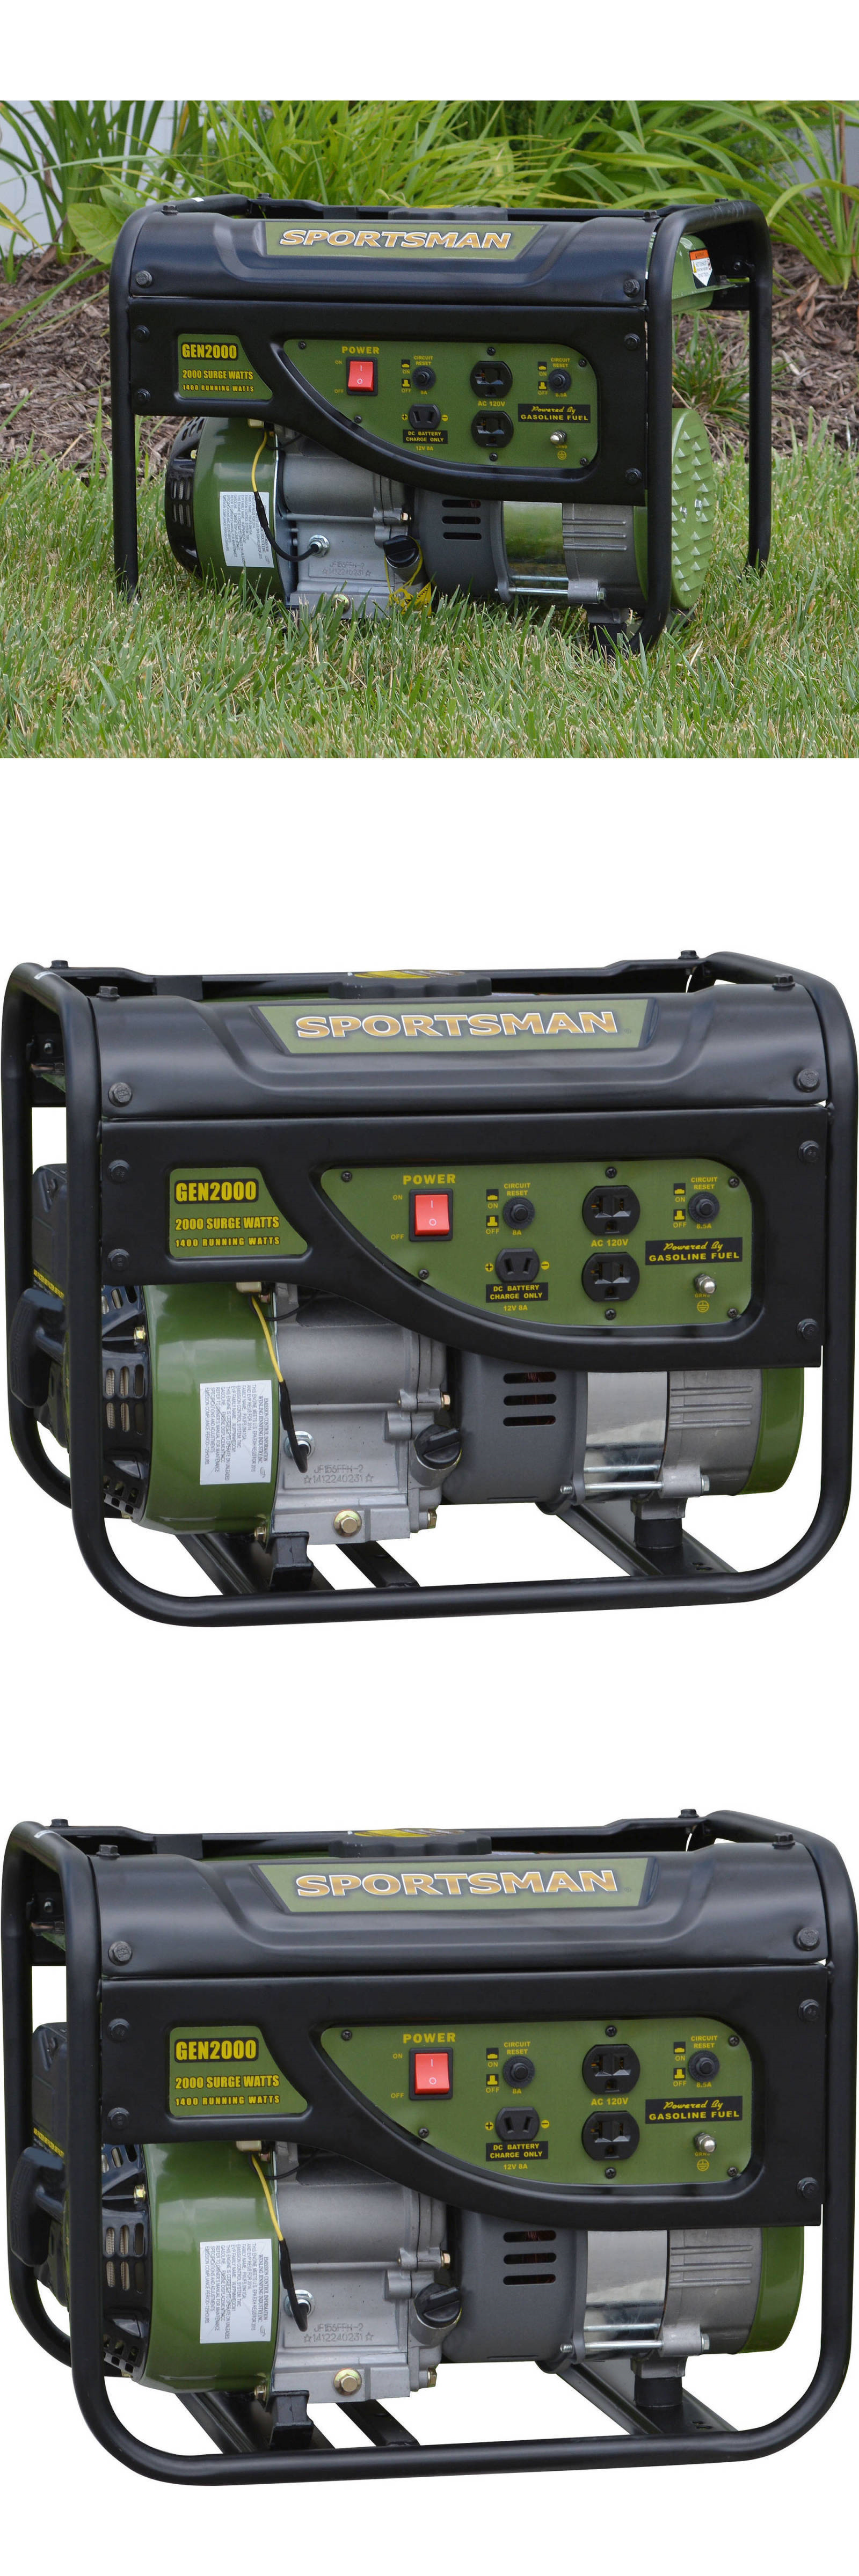 Generators Portable Generator 2000 Watt Power Quiet